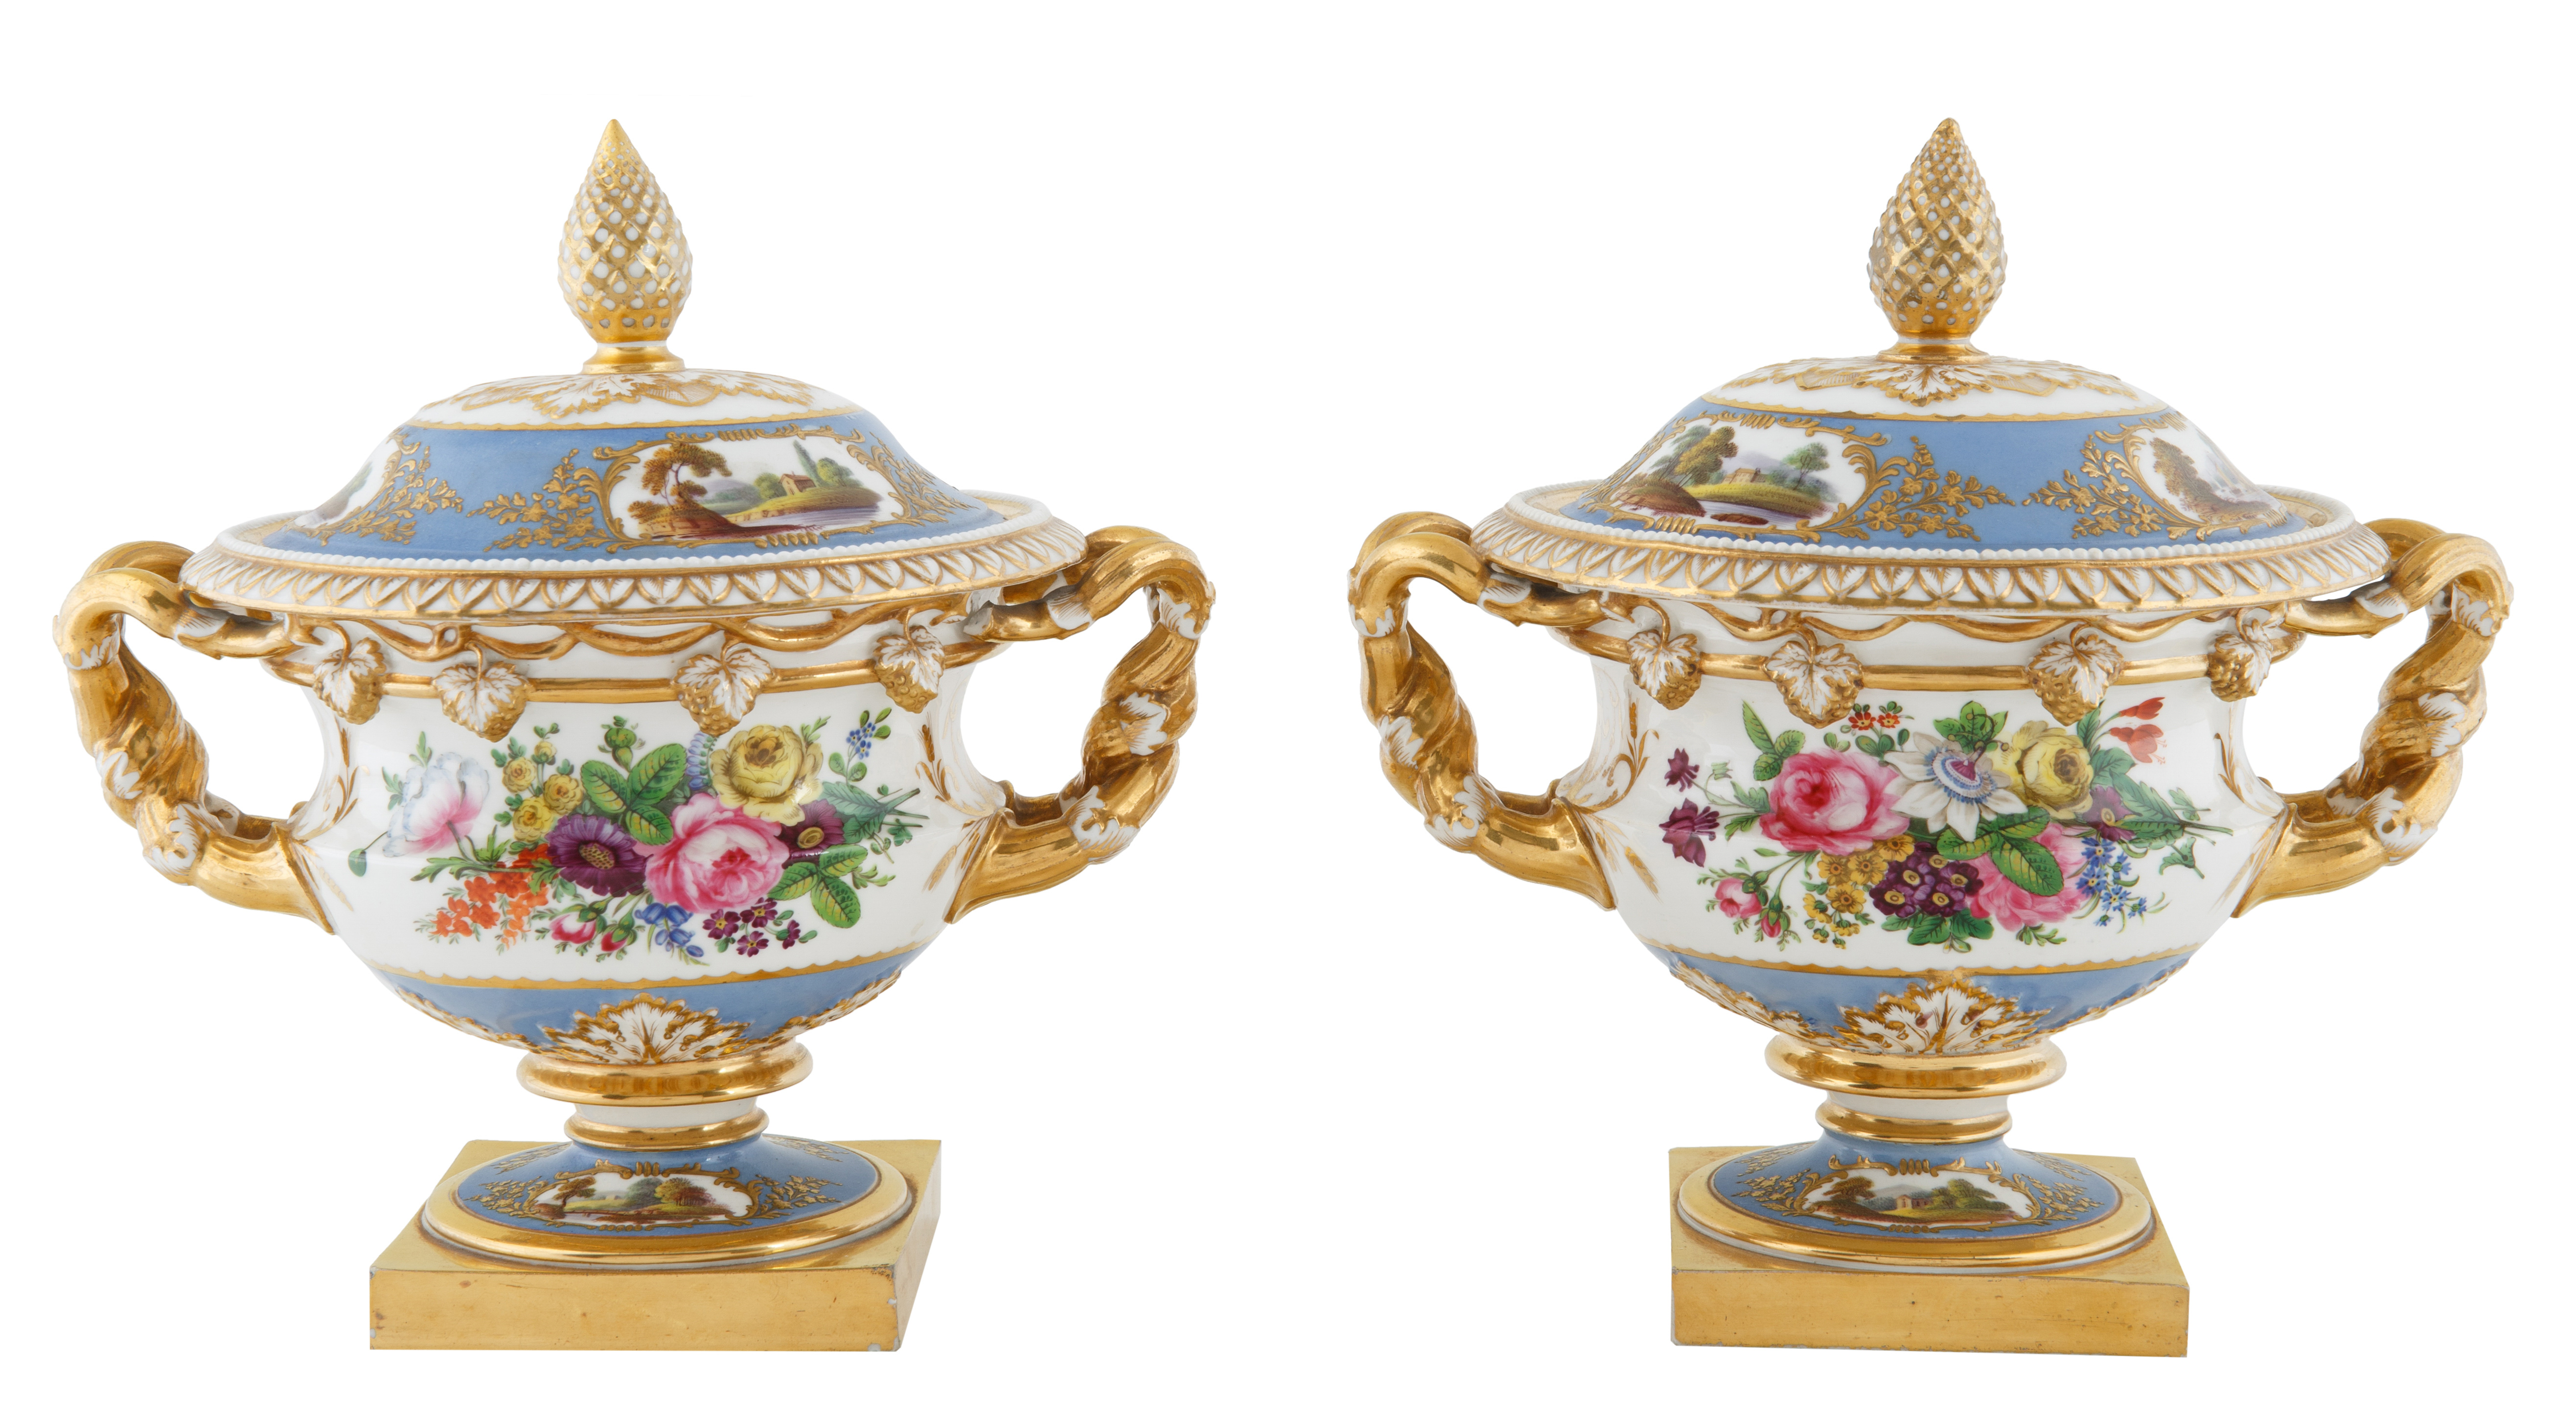 CONTINENTAL PORCELAIN COVERED URNS